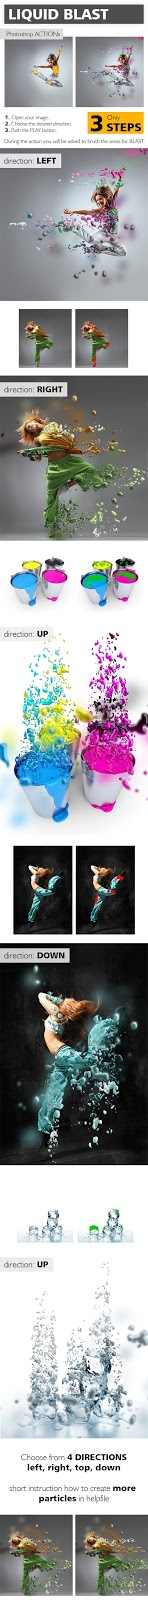 Liquid Blast Photoshop Action (GraphicRiver – 10267688)